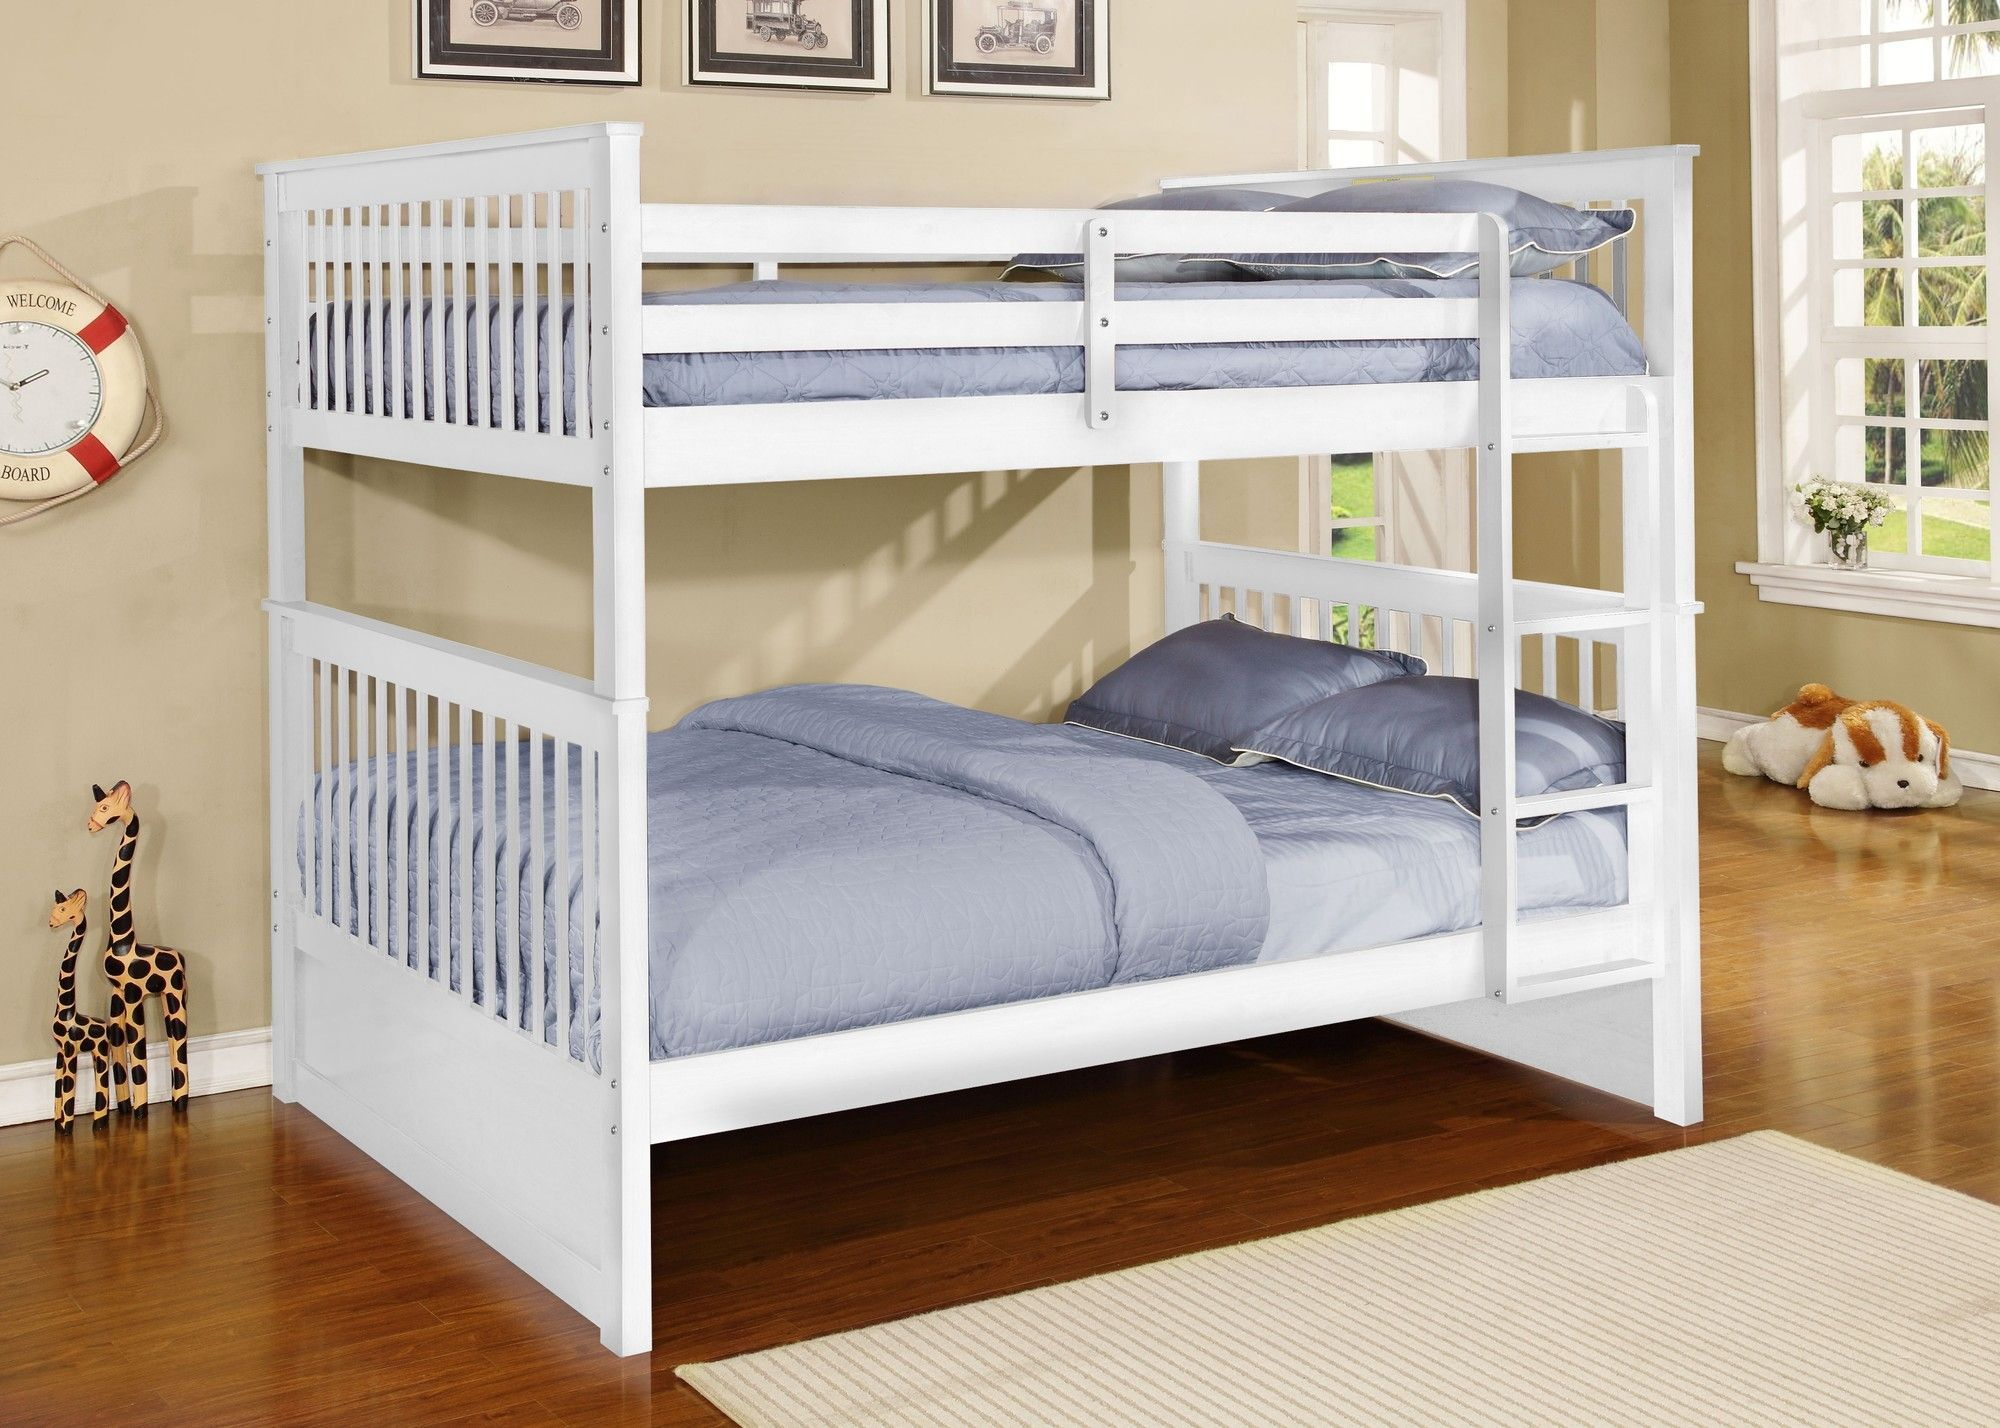 Wildon Home Full Over Full Bunk Bed Bunk Beds Bunk Beds With